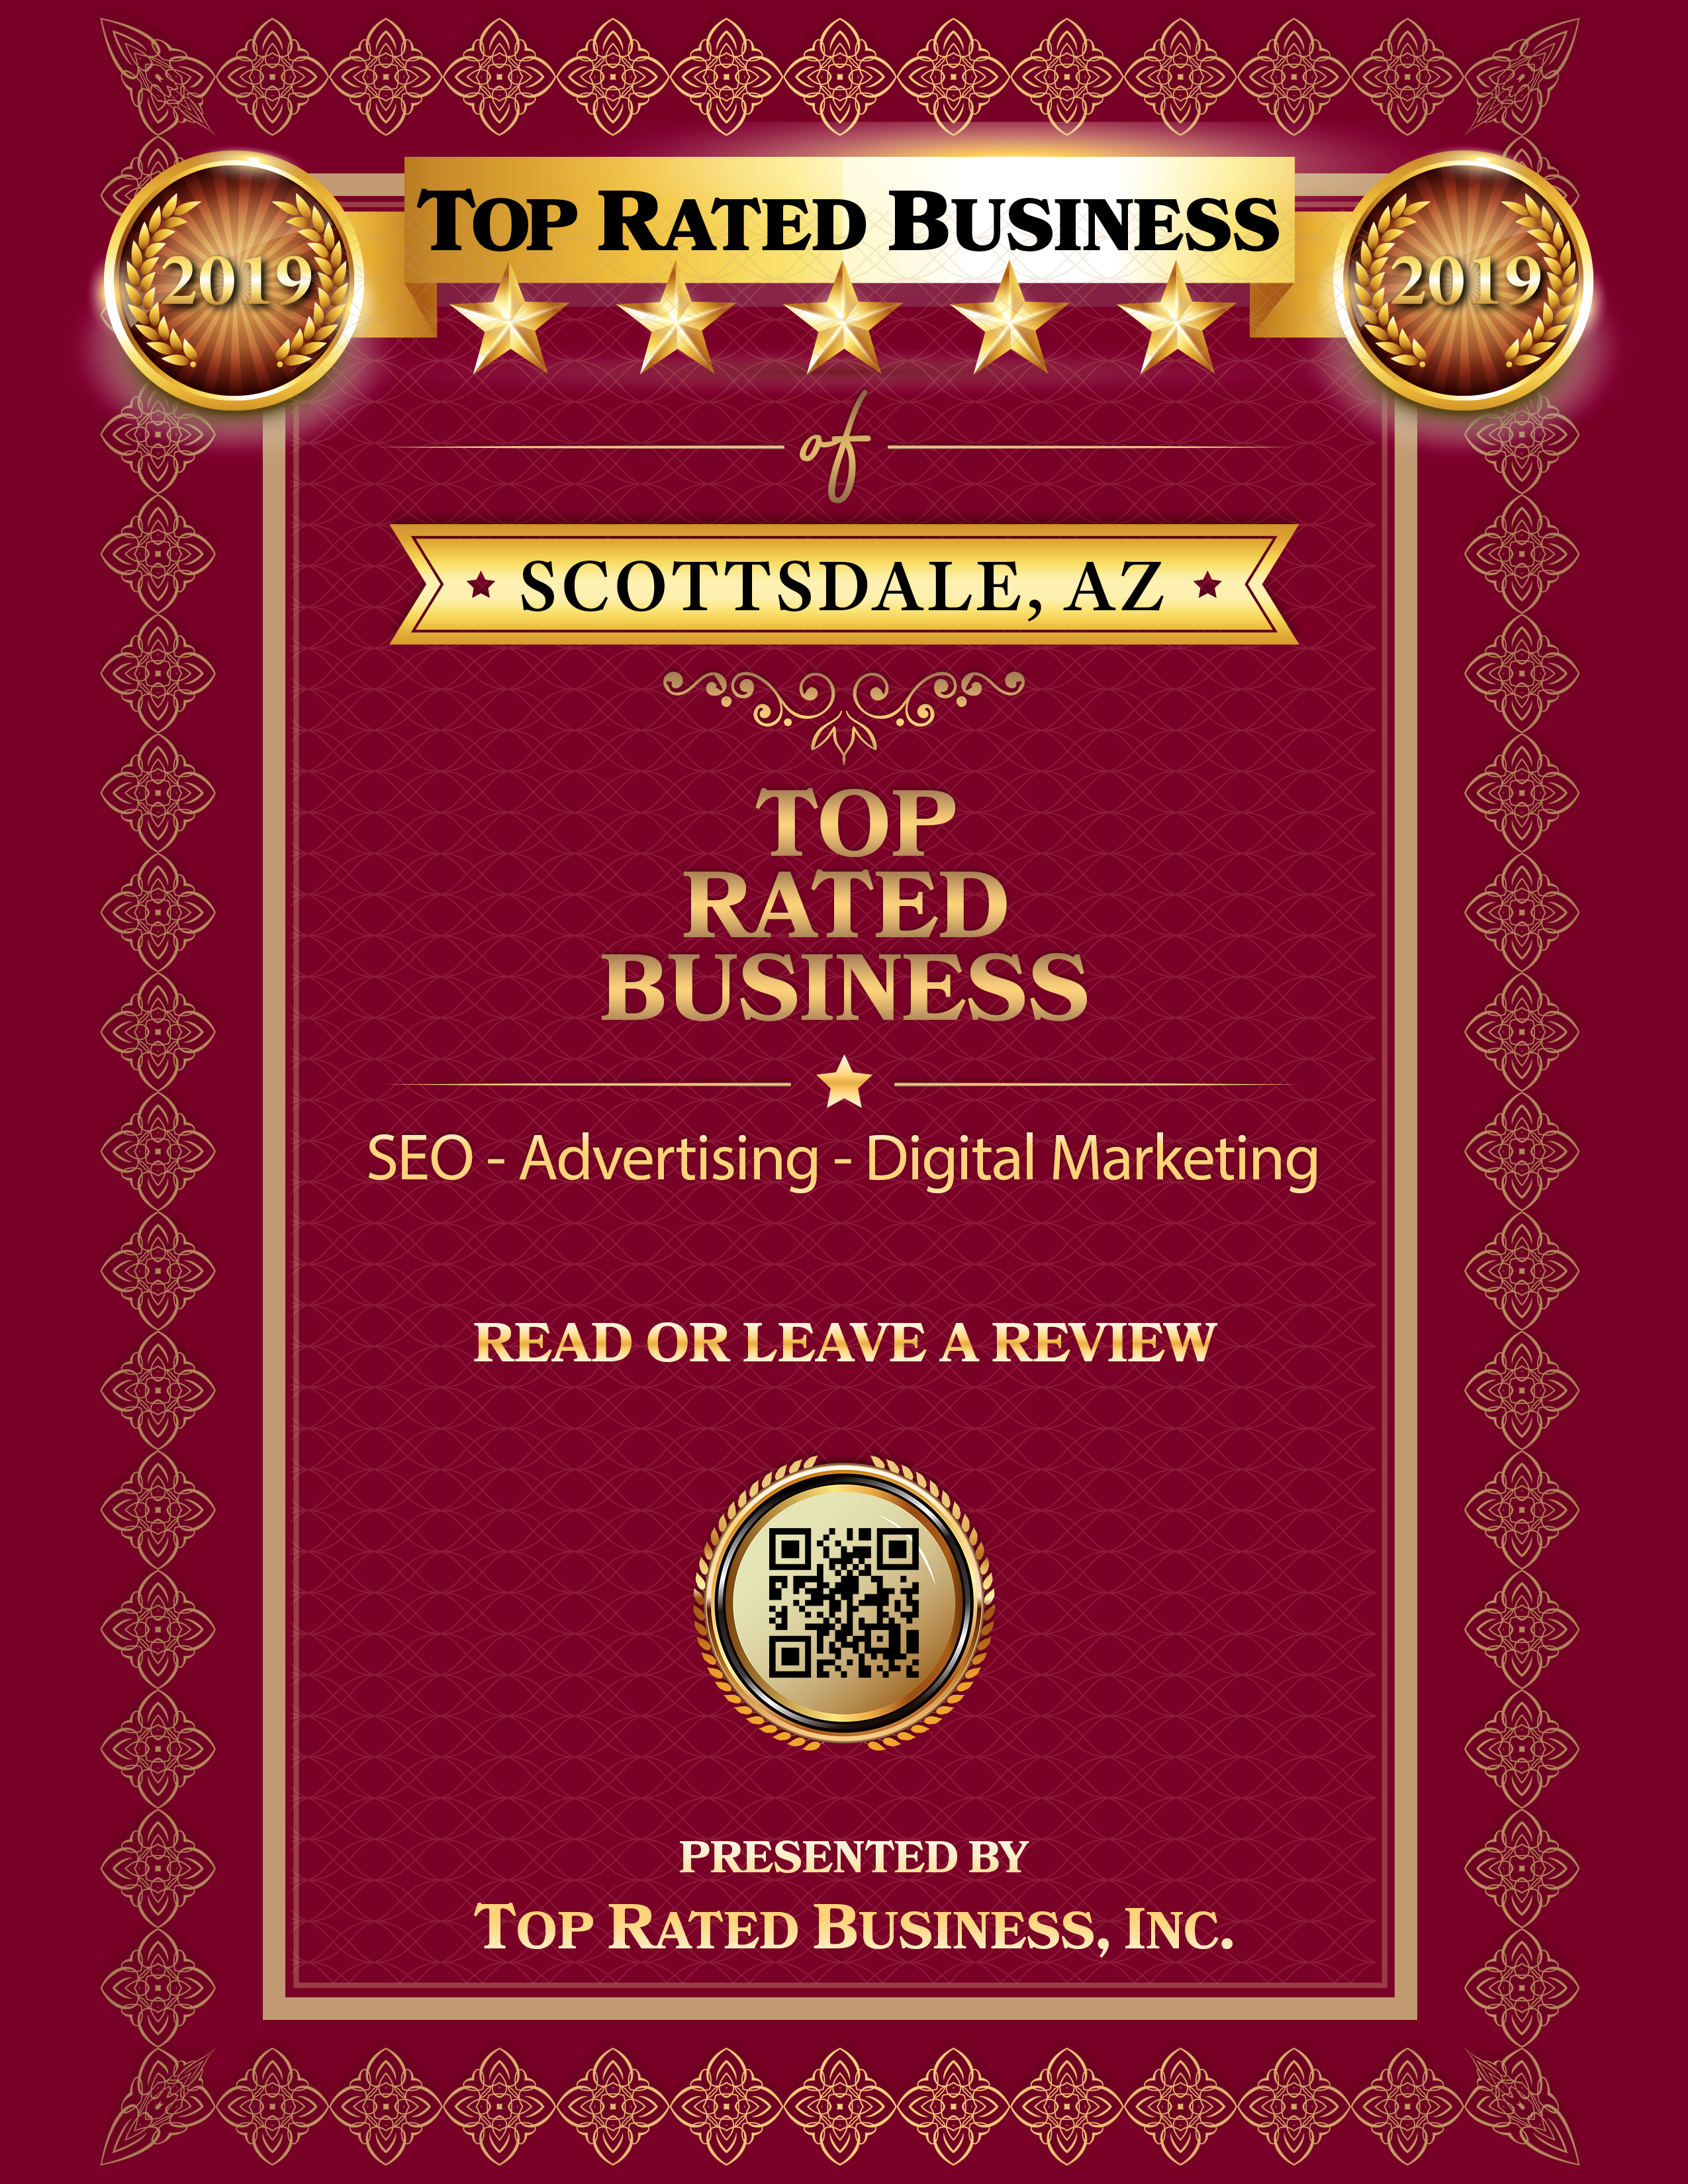 scottsdale-top-rated-seo-top-rated-advertising-top-rated-digital-marketing-award